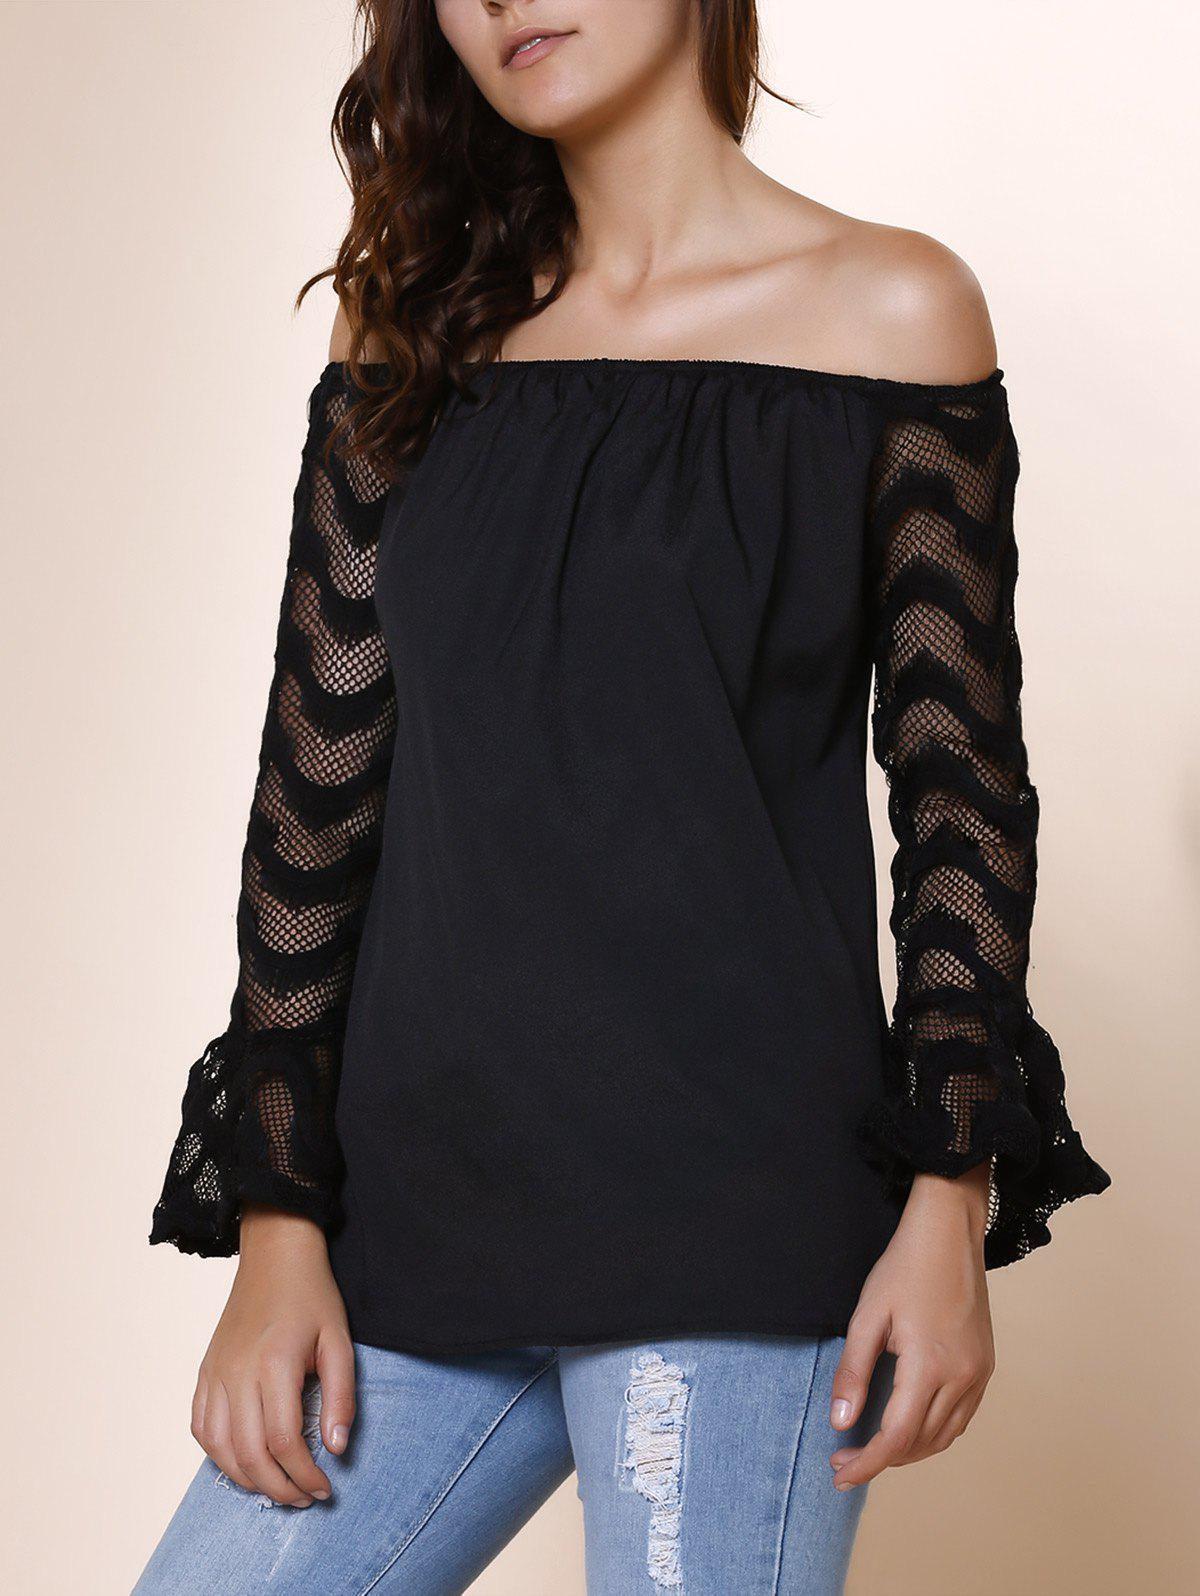 Fashionable Off-The-Shoulder Lace Splicing Sleeve Black T-Shirt For Women - BLACK XL